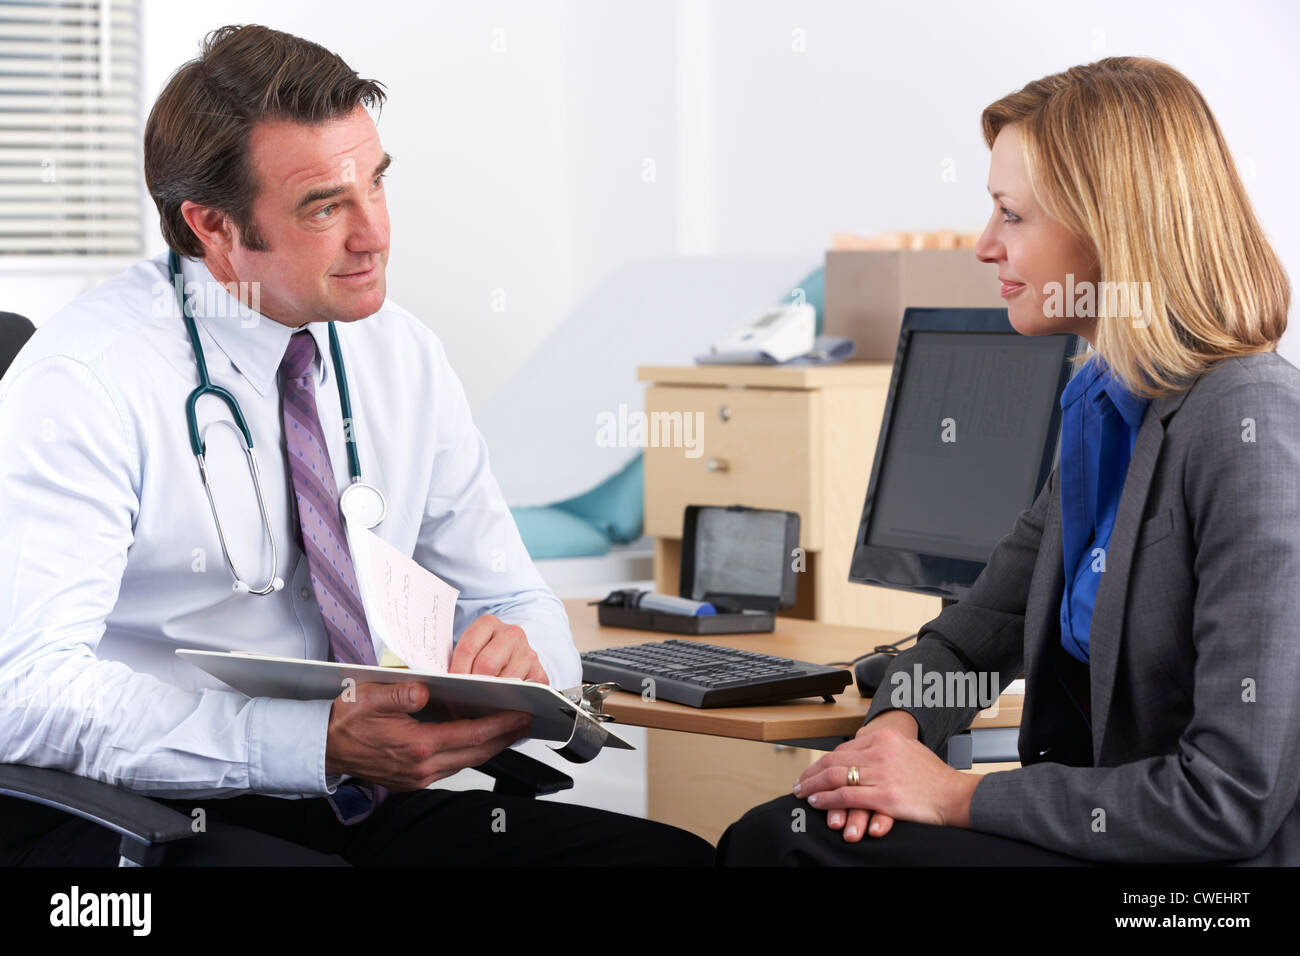 American doctor talking to businesswoman patient - Stock Image